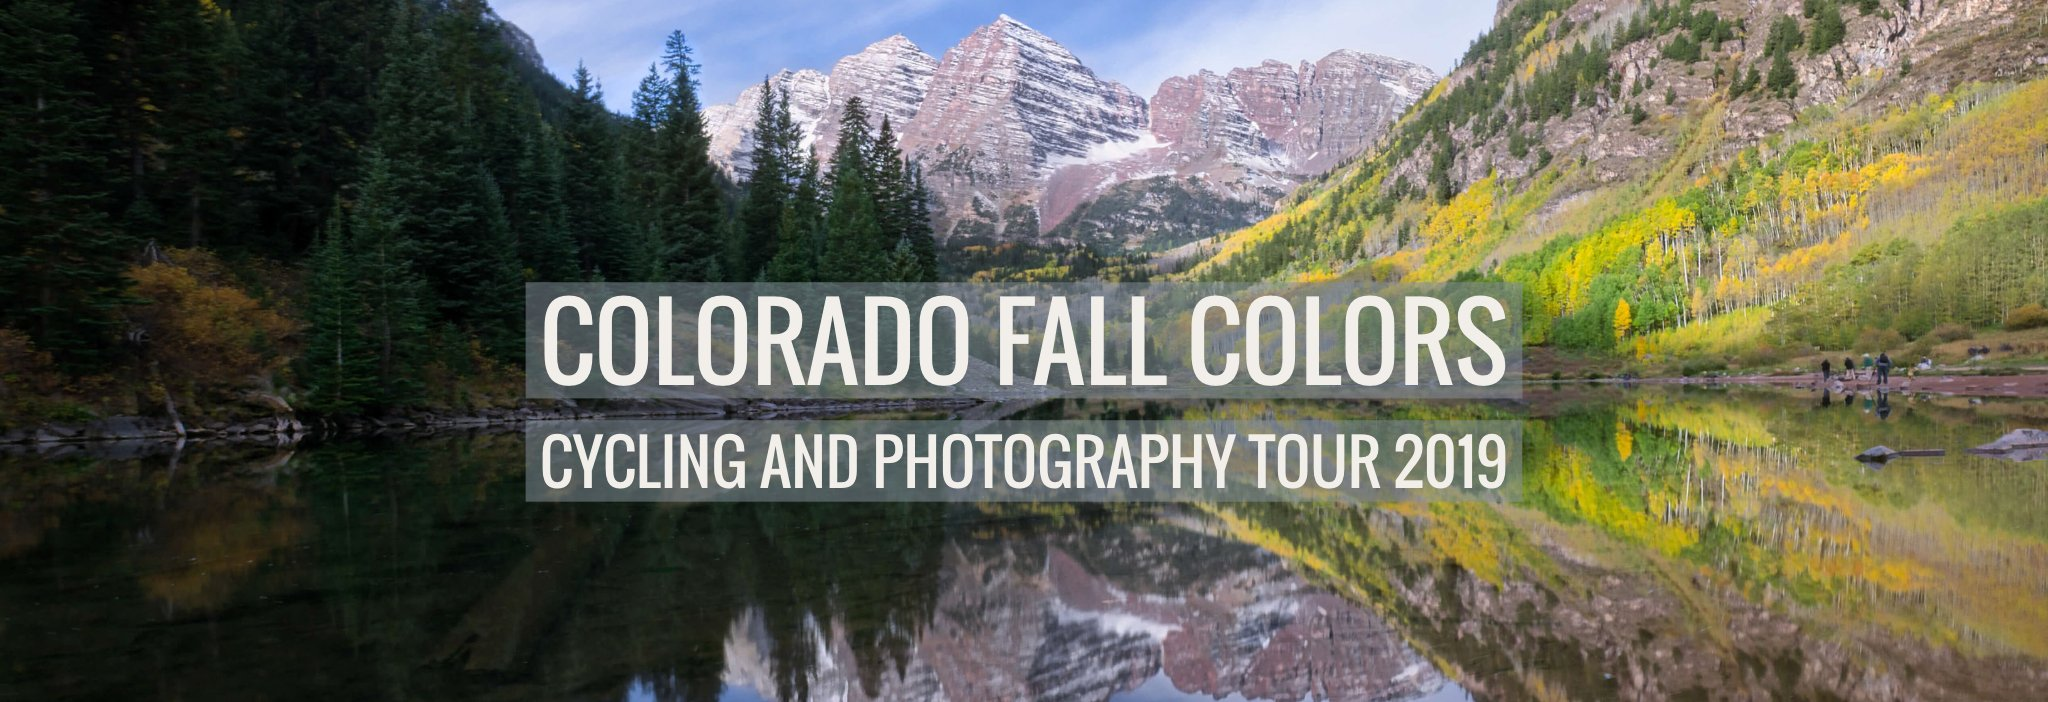 Colorado fall colors cycling tour and photography workshop #intentionallylost